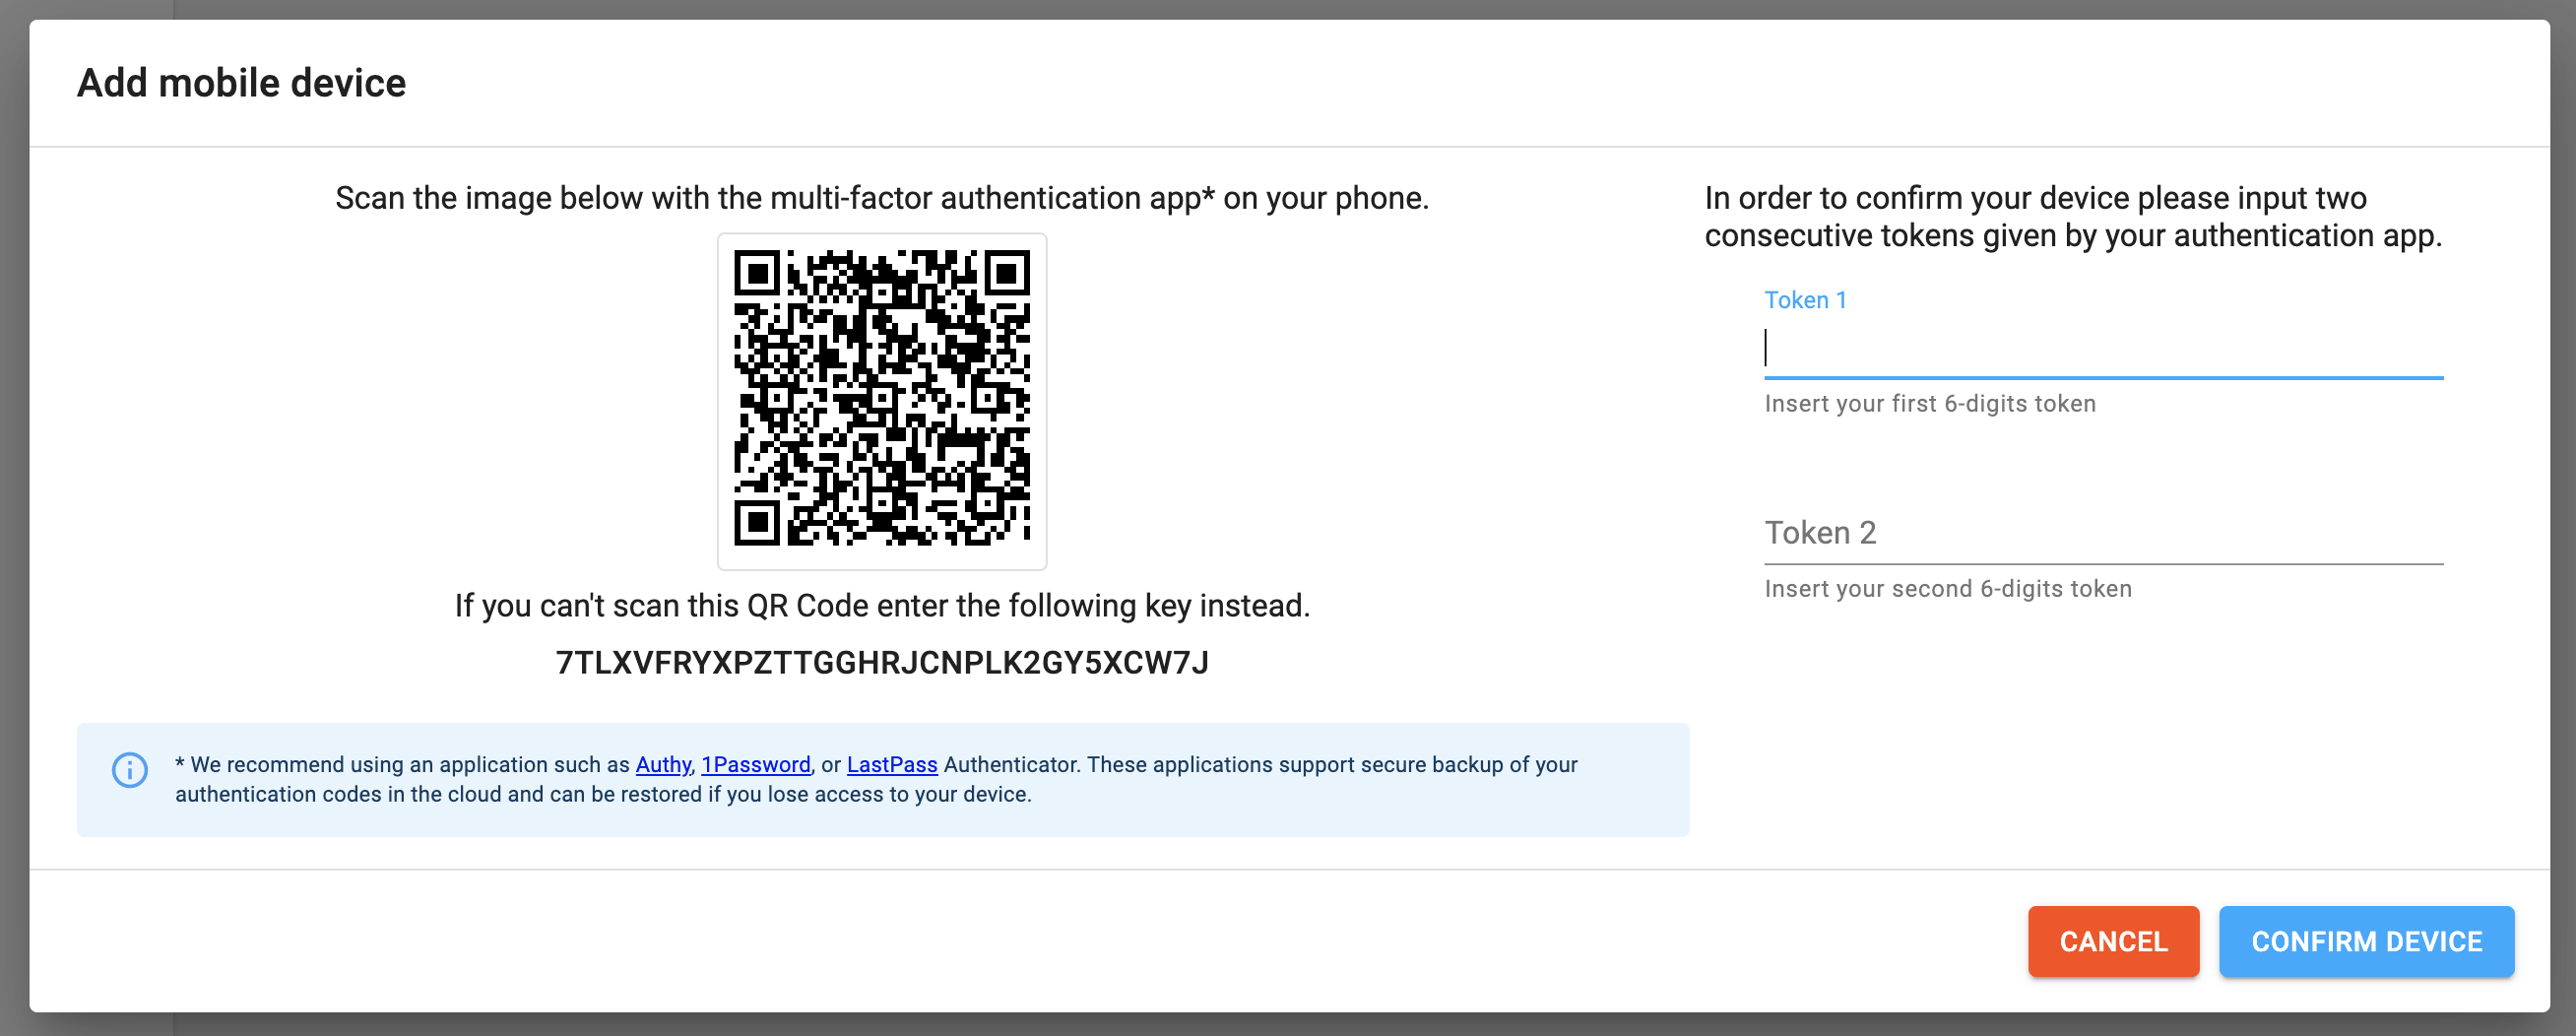 qr code scan and confirmation tokens